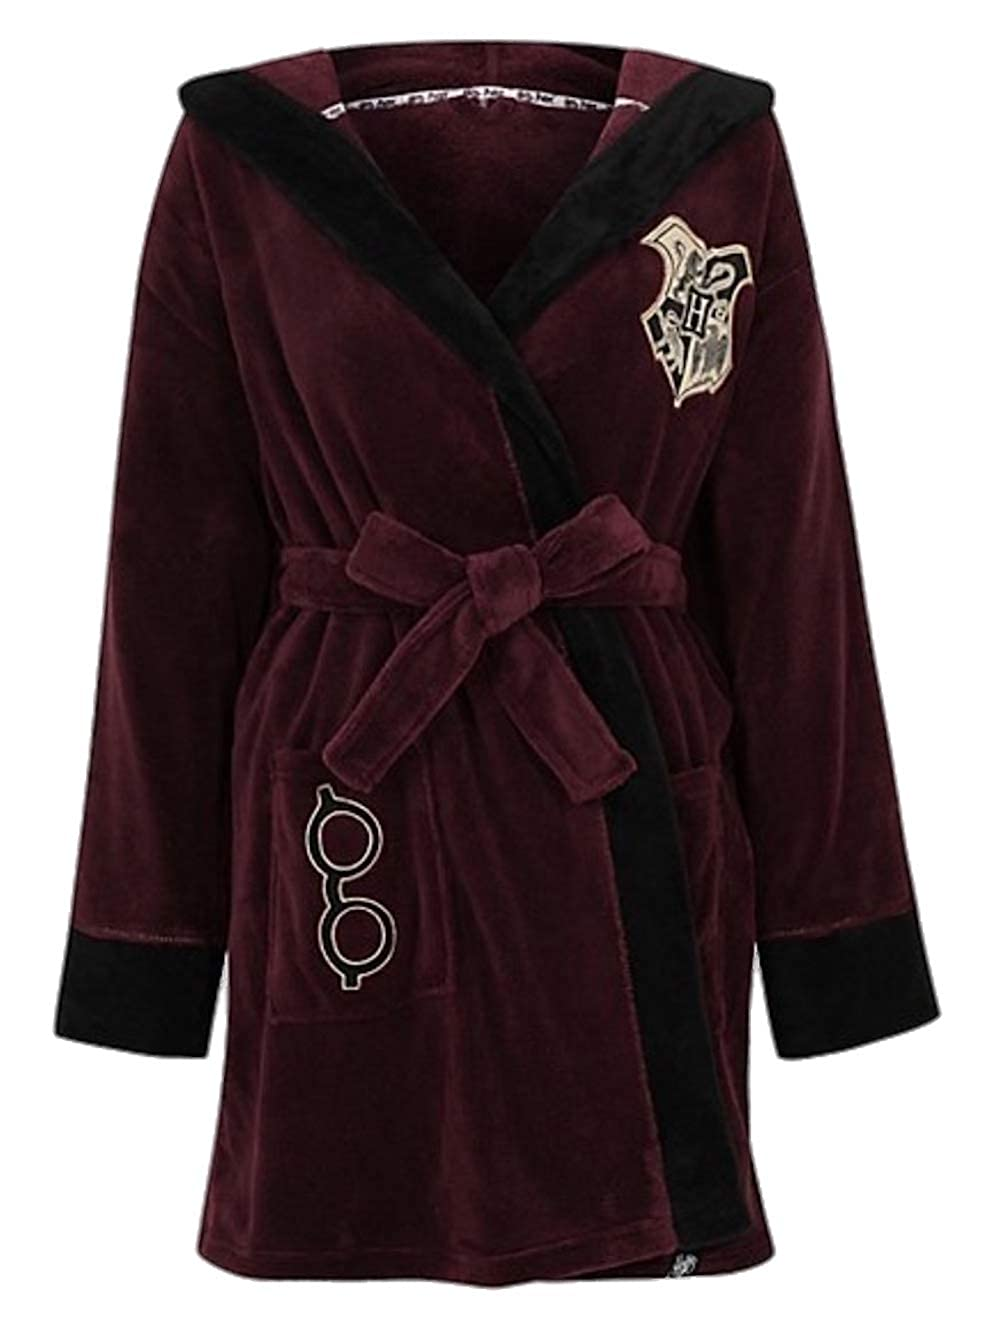 Ladies Harry Potter Robe Dressing Gown Embroidered Detailing